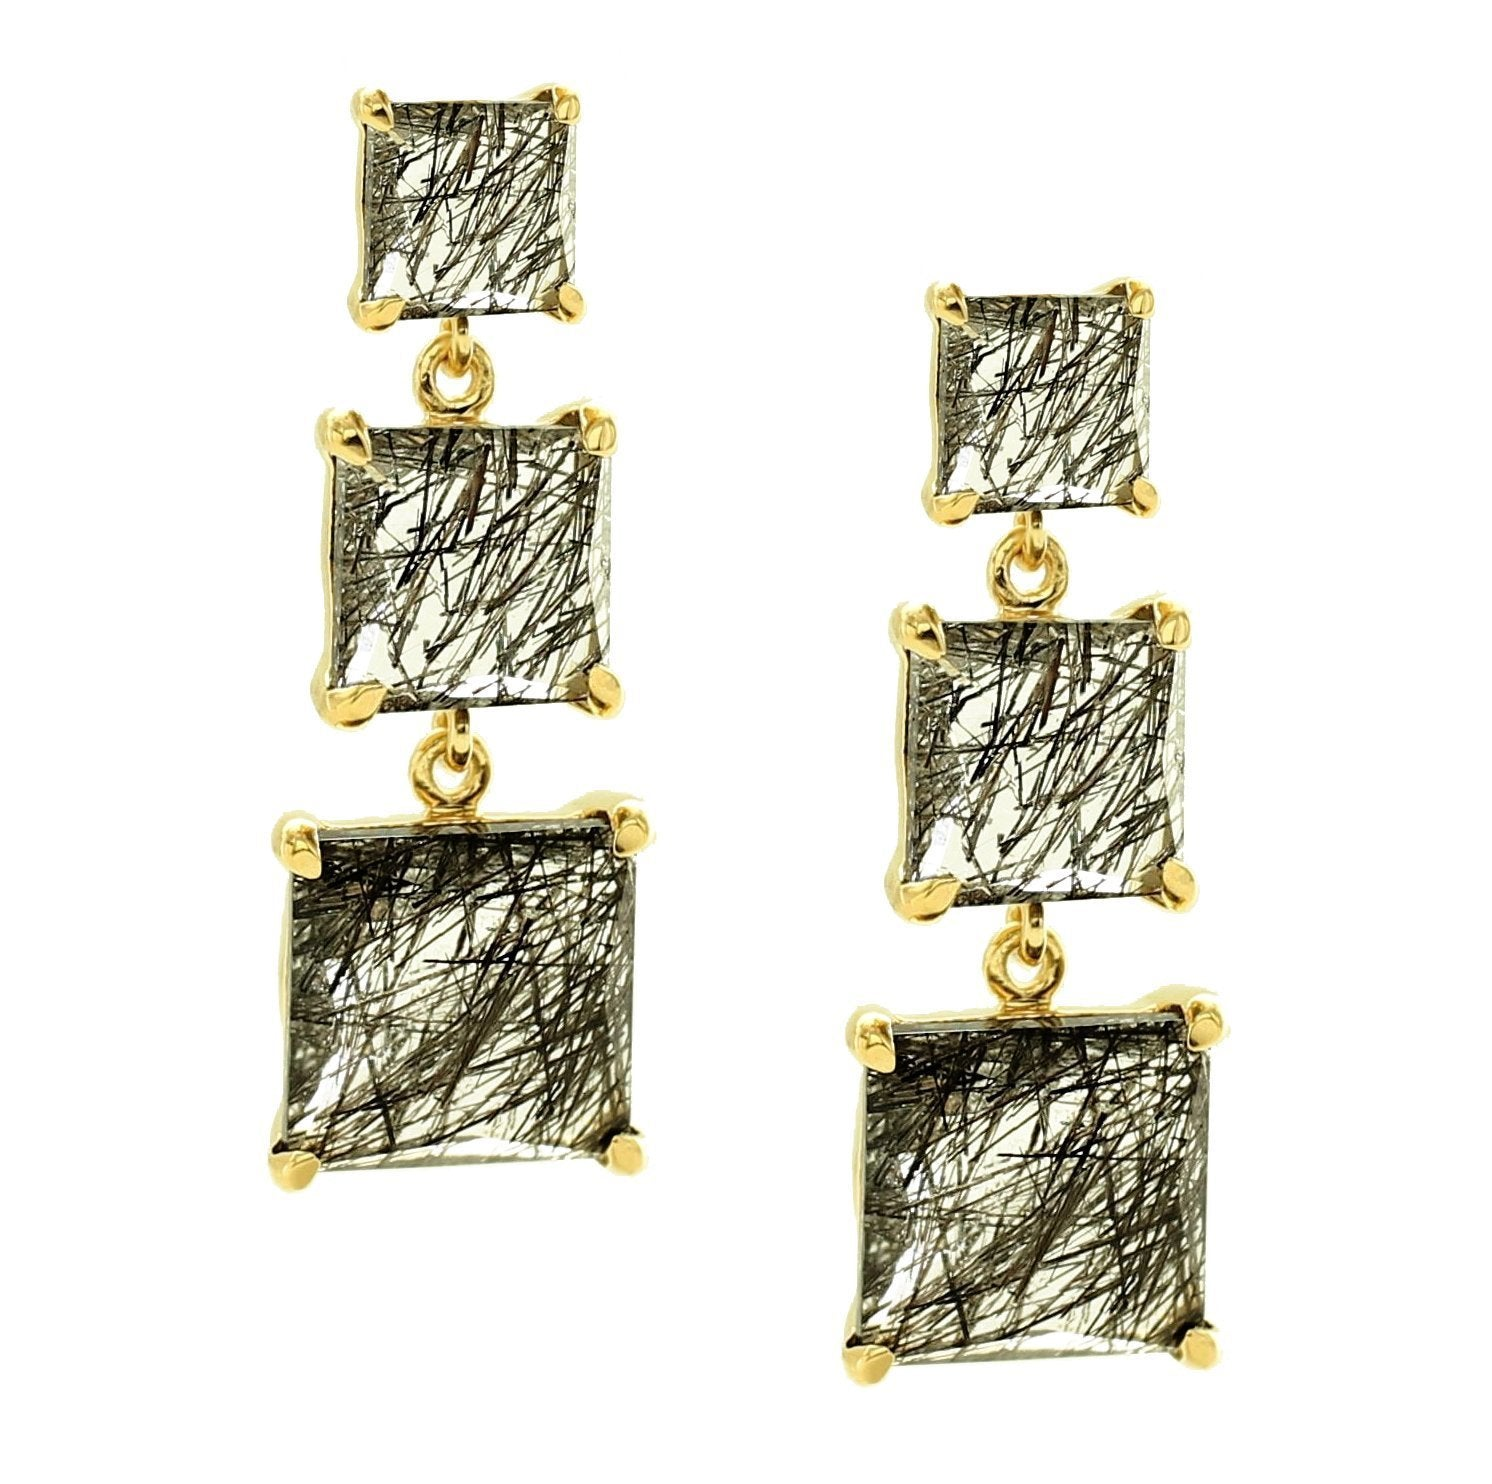 PROTECT 3 DROP EARRINGS - BLACK RUTILE QUARTZ & GOLD - LIMITED EDITION - SO PRETTY CARA COTTER